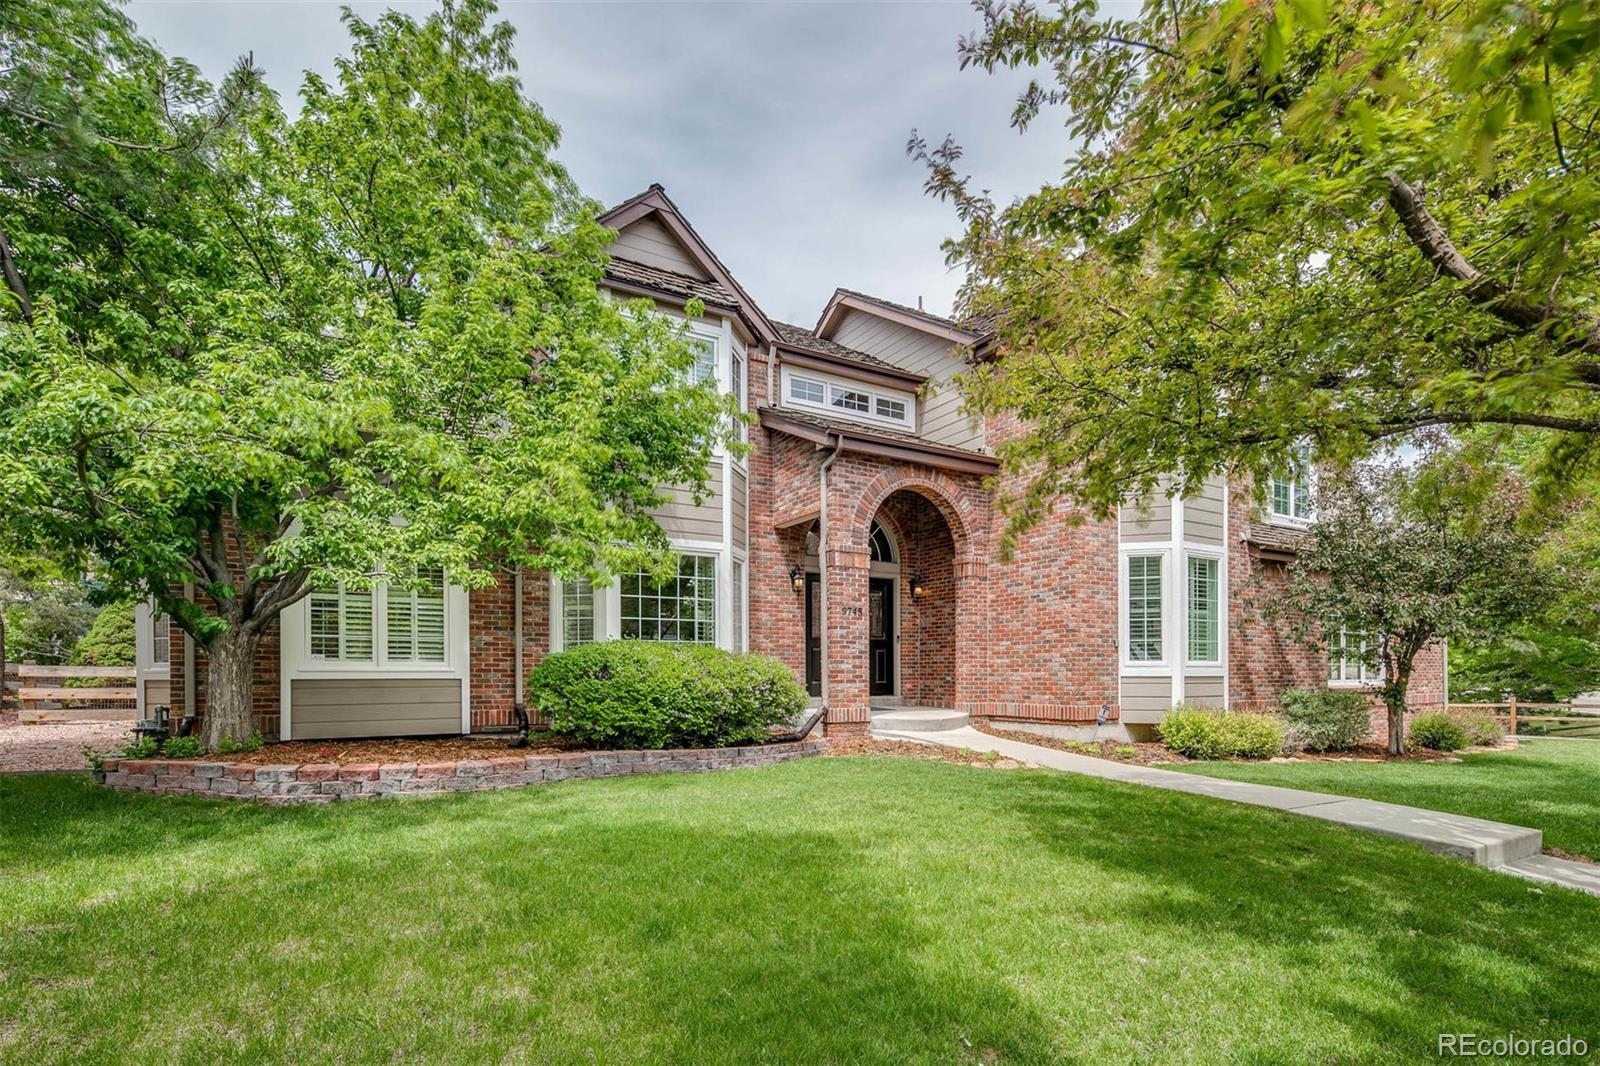 MLS# 9857155 - 1 - 9745 Edgewater Place, Lone Tree, CO 80124